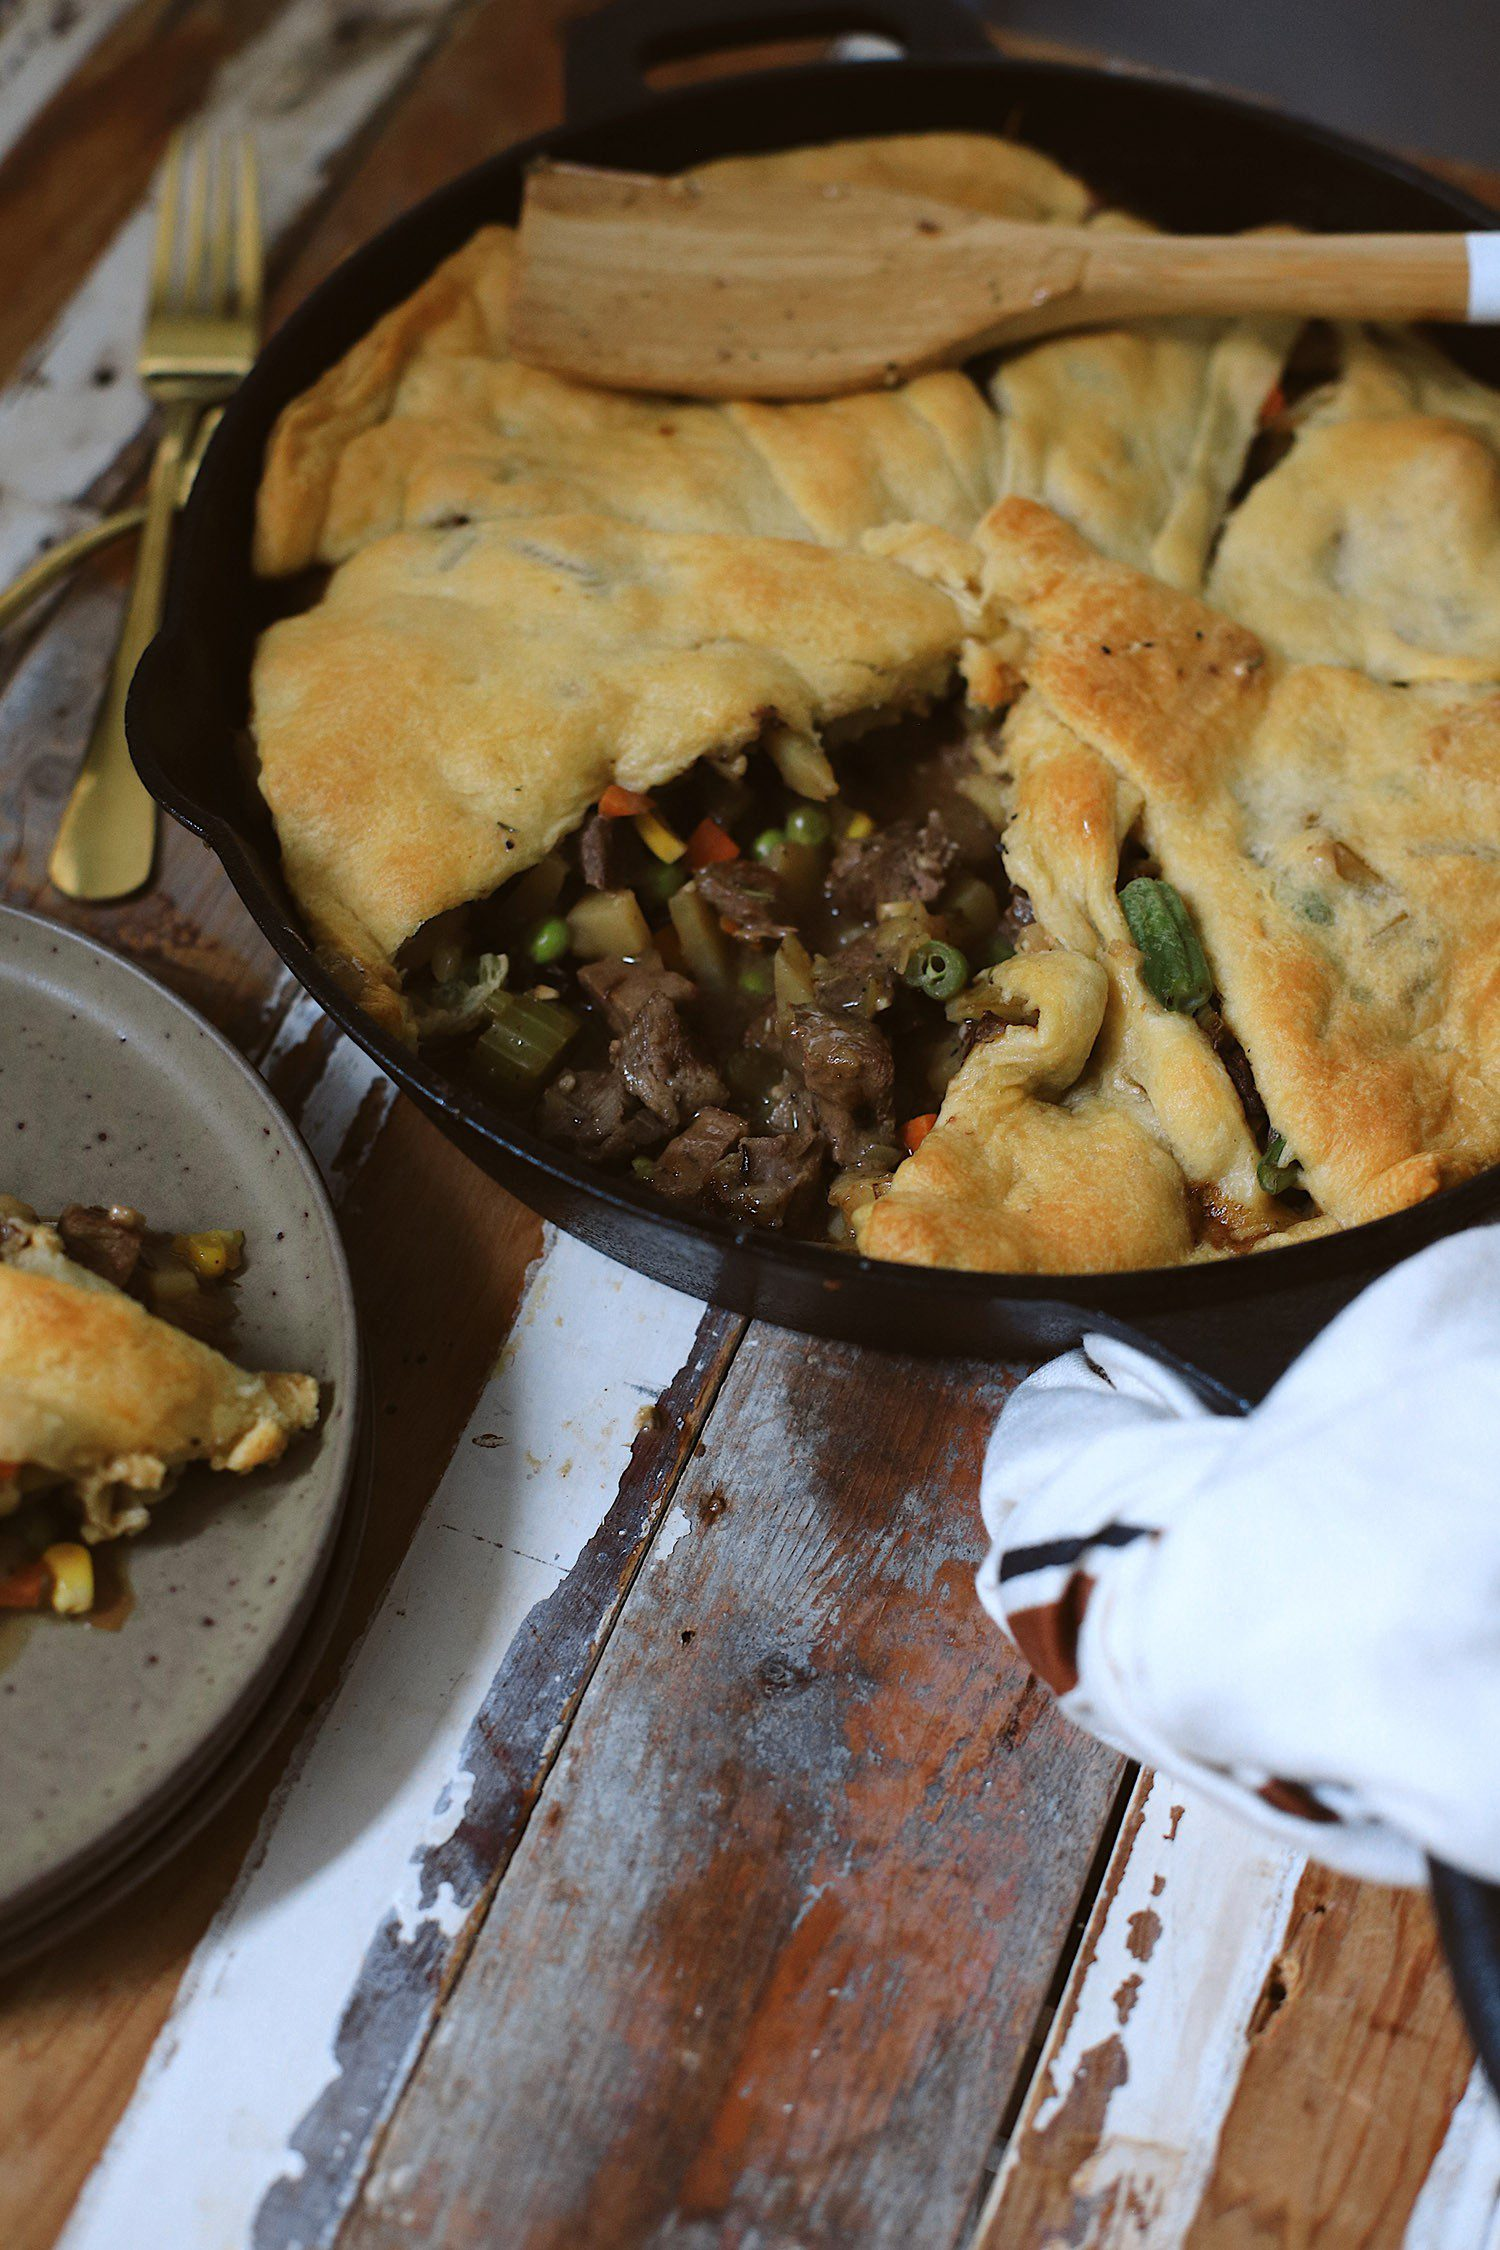 This easy and delicious Steak Pot Pie is made with a flaky and buttery crescent roll crust. The homemade Omaha Steak Pot Pie filling is perfectly seasoned, but you could EASILY switch up the meat with leftover chicken or turkey. Don't miss out on the ultimate comfort food that's easy to make in one skillet!